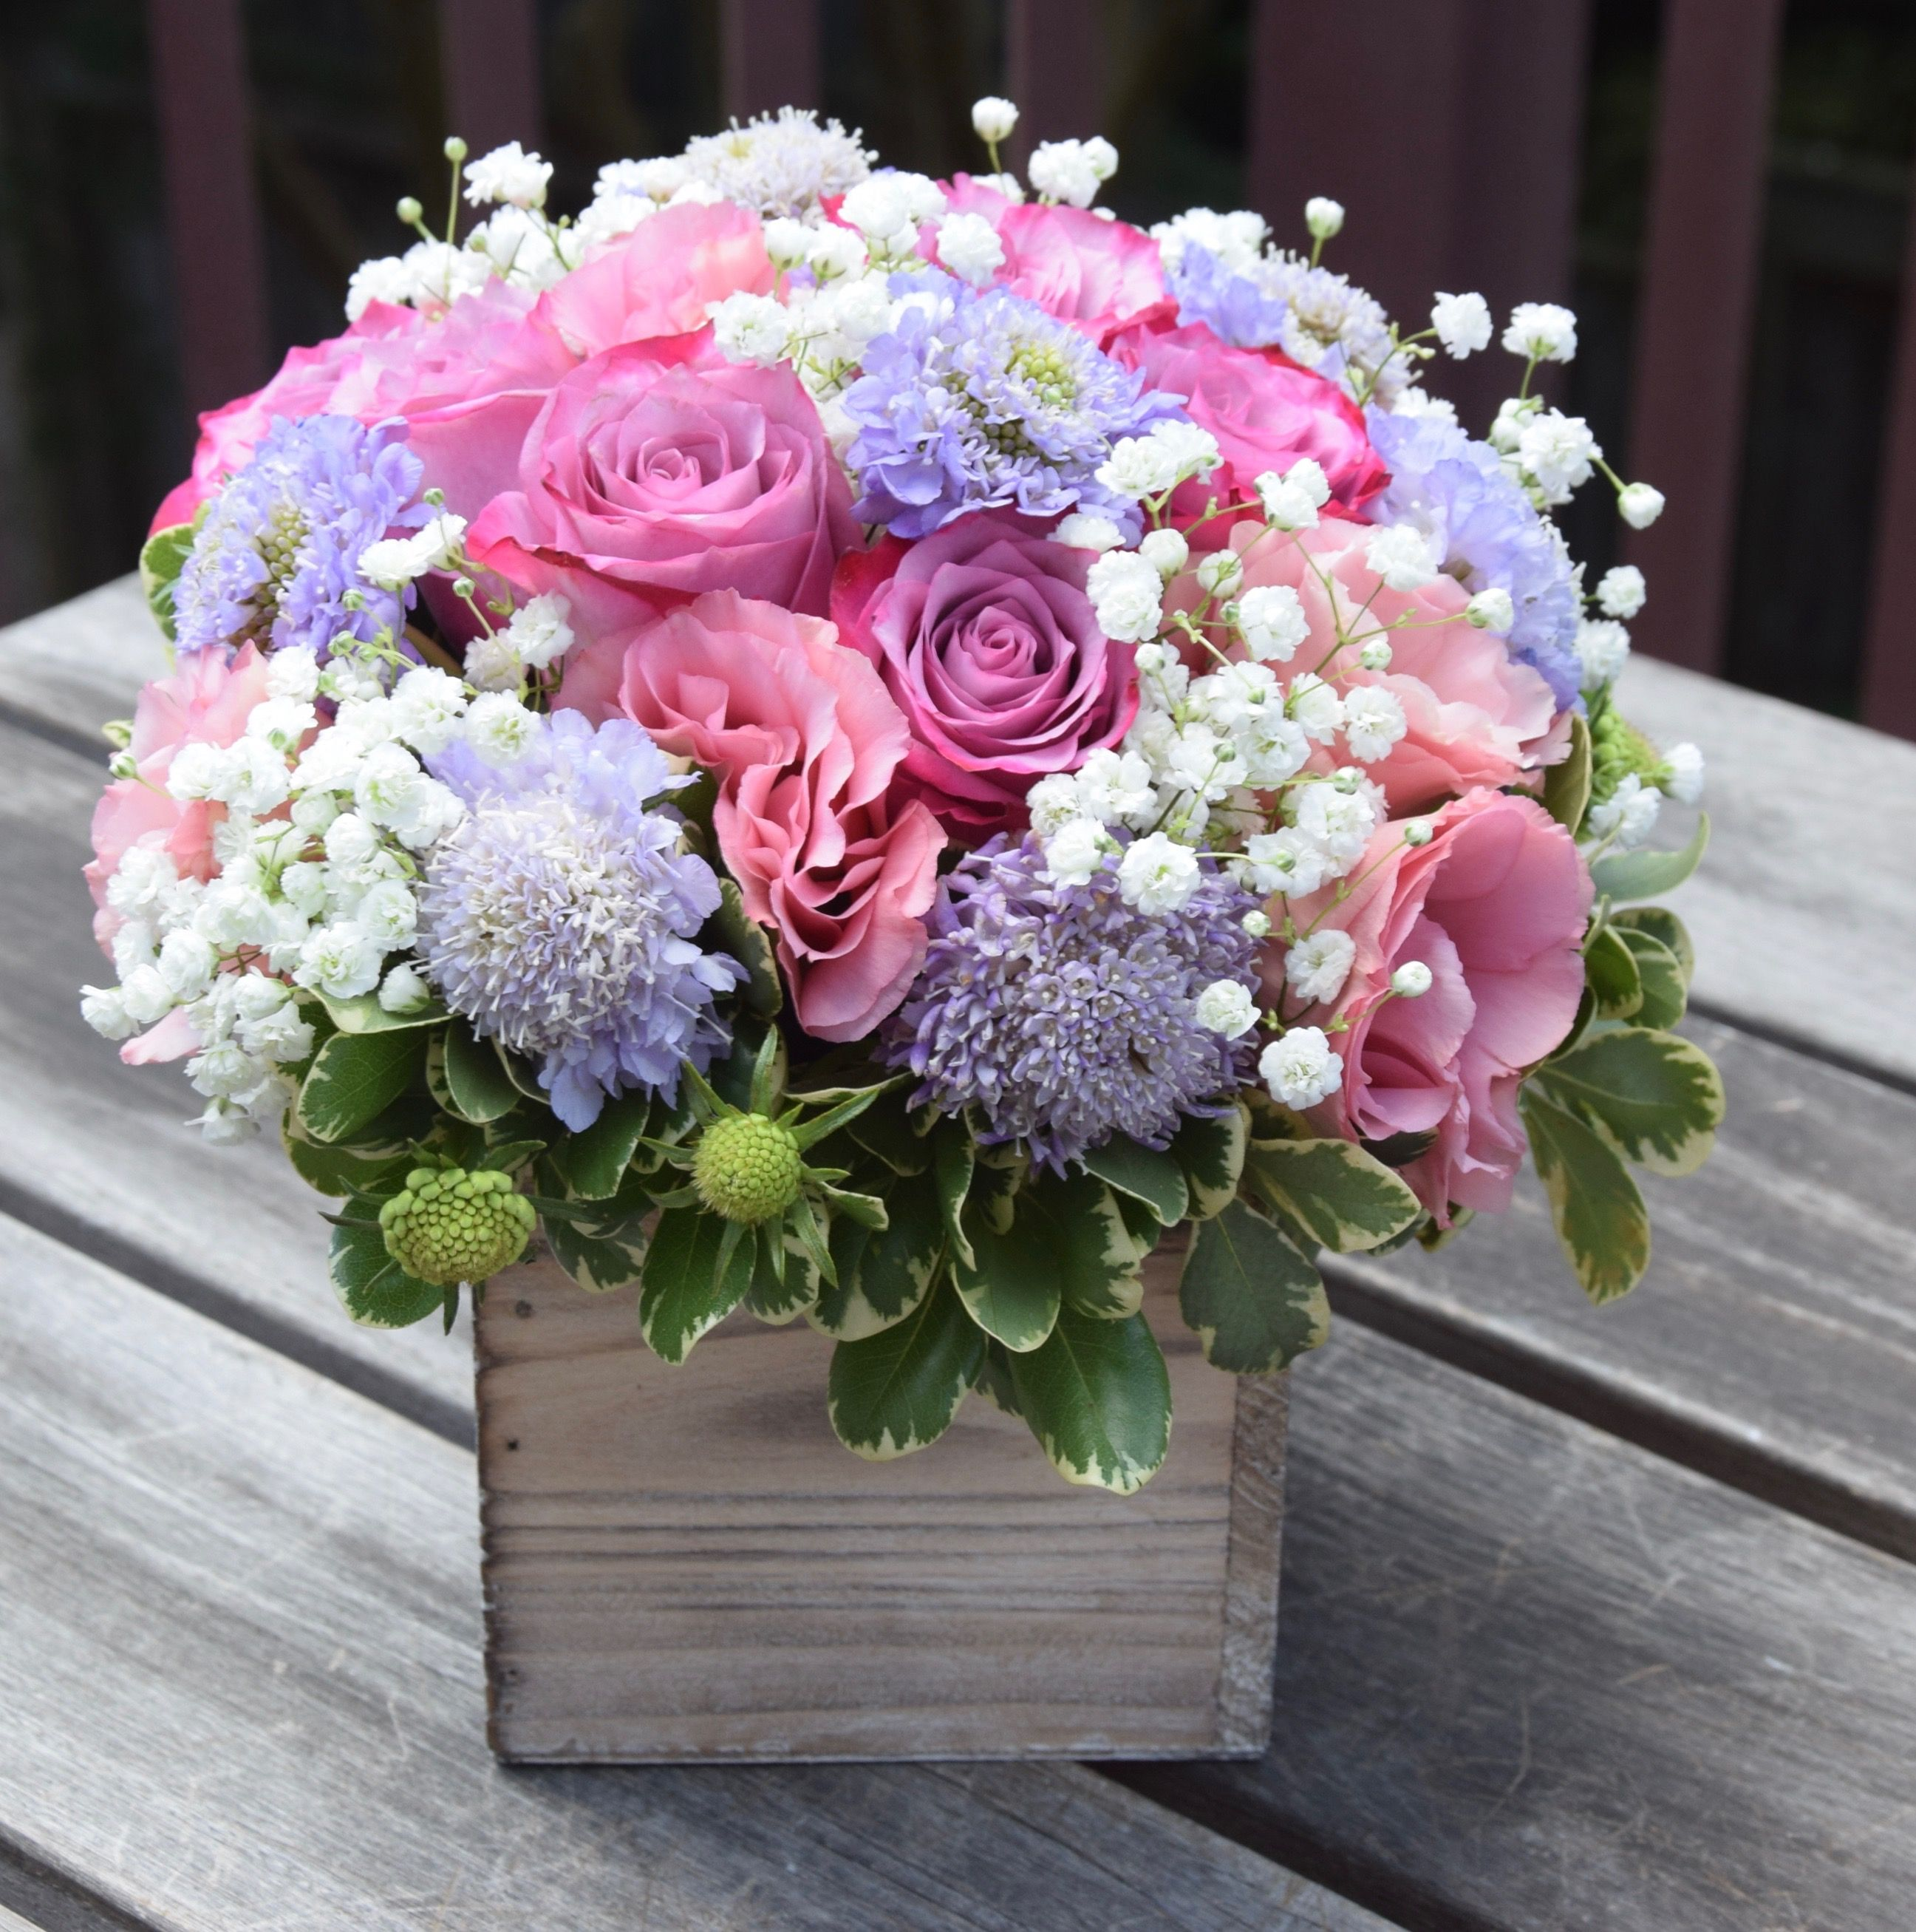 Floral Gift In A Wooden Box Roses Lisianthus Scabiosa Baby Breath Fresh Flowers Arrangements Spring Flower Arrangements Flower Arrangements